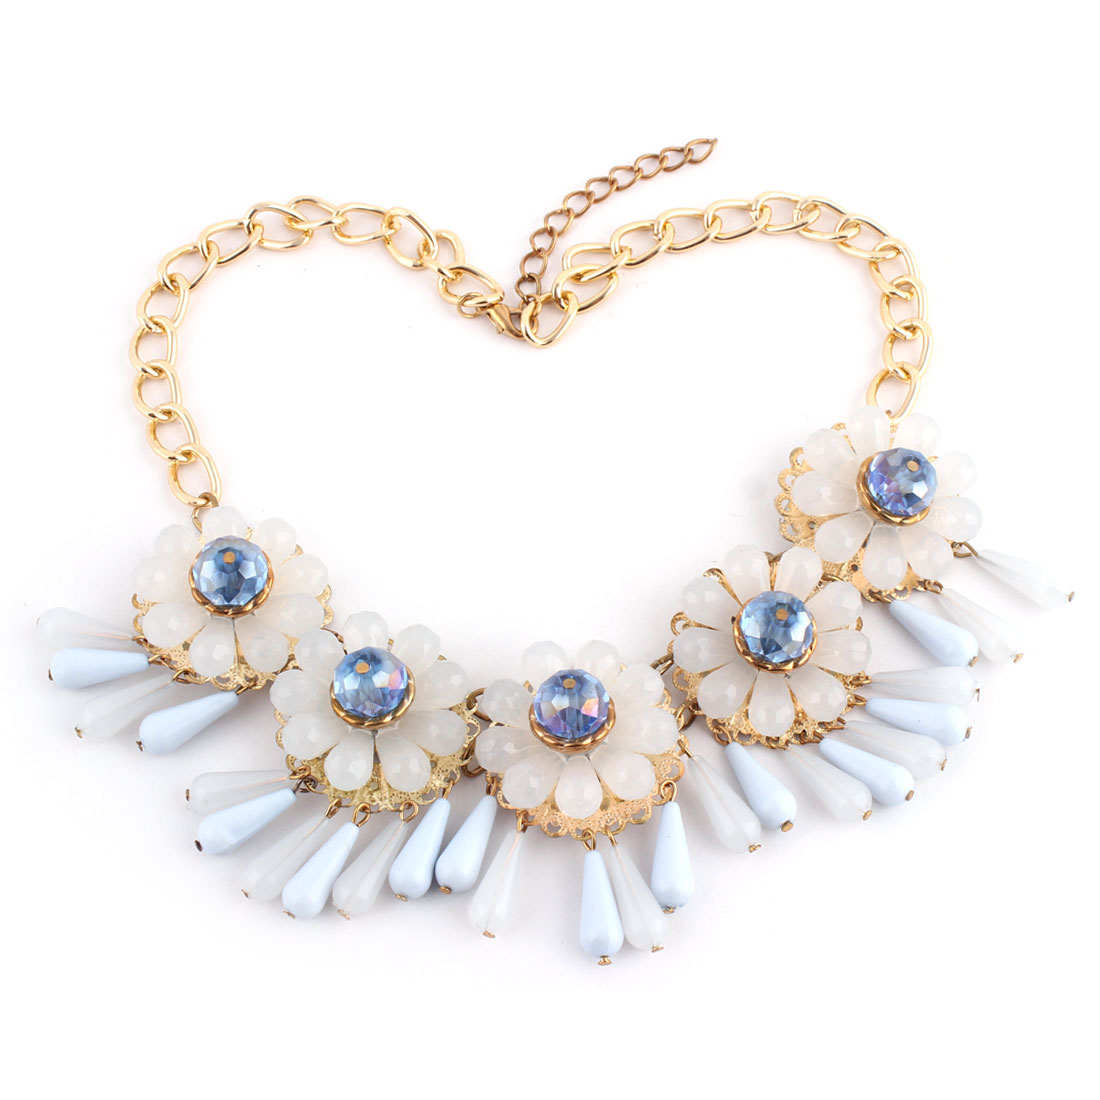 Plastic Flower Beads Pendant Metal Lobster Clasp Thick Chain Necklace